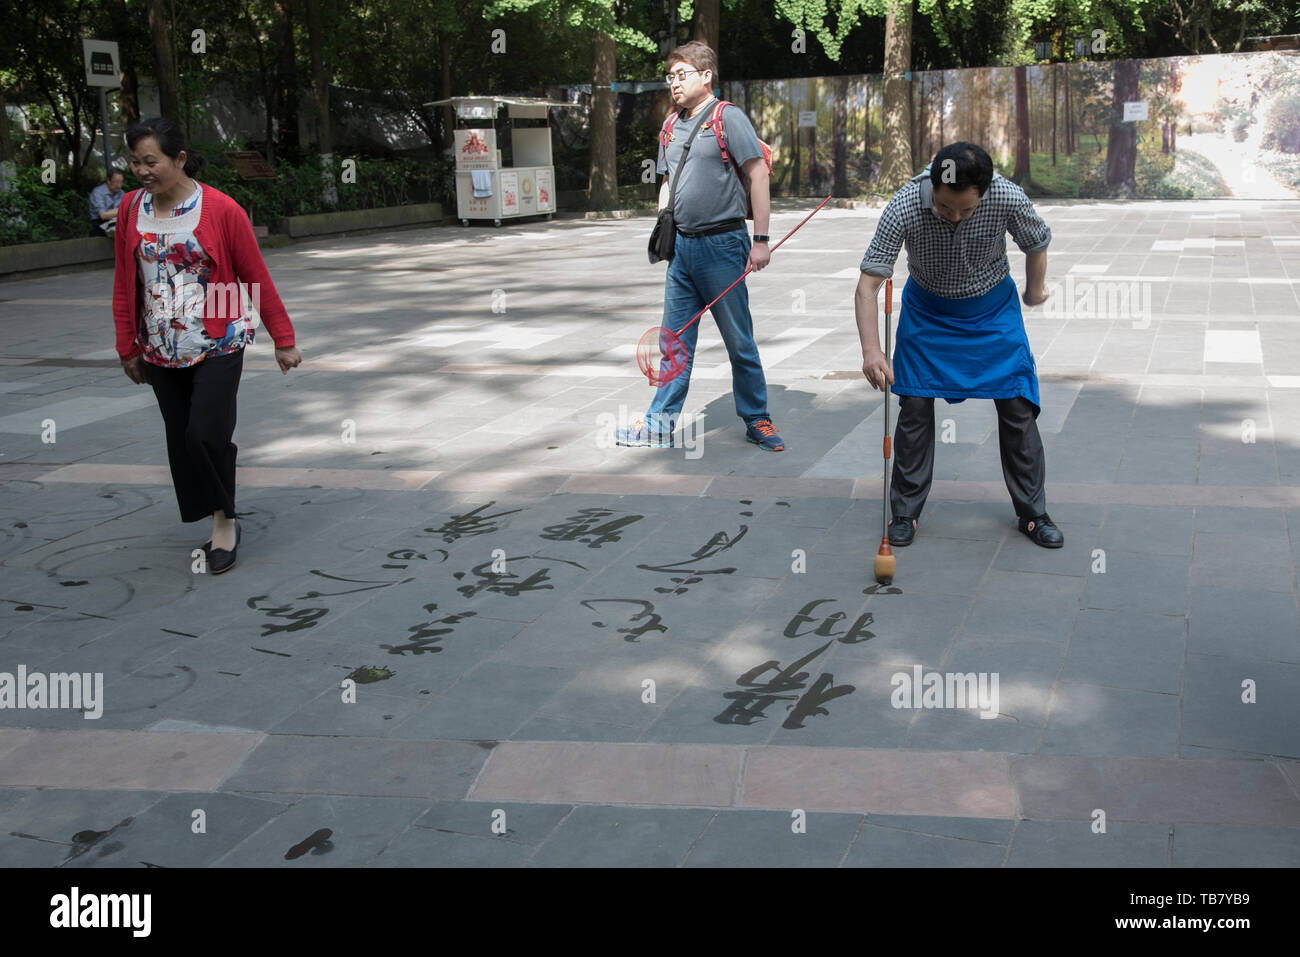 c10ab8be7 Elerly Chinese men practicing calligraphy on the ground at Huanhua Park,  Chengdu, Sichuan,